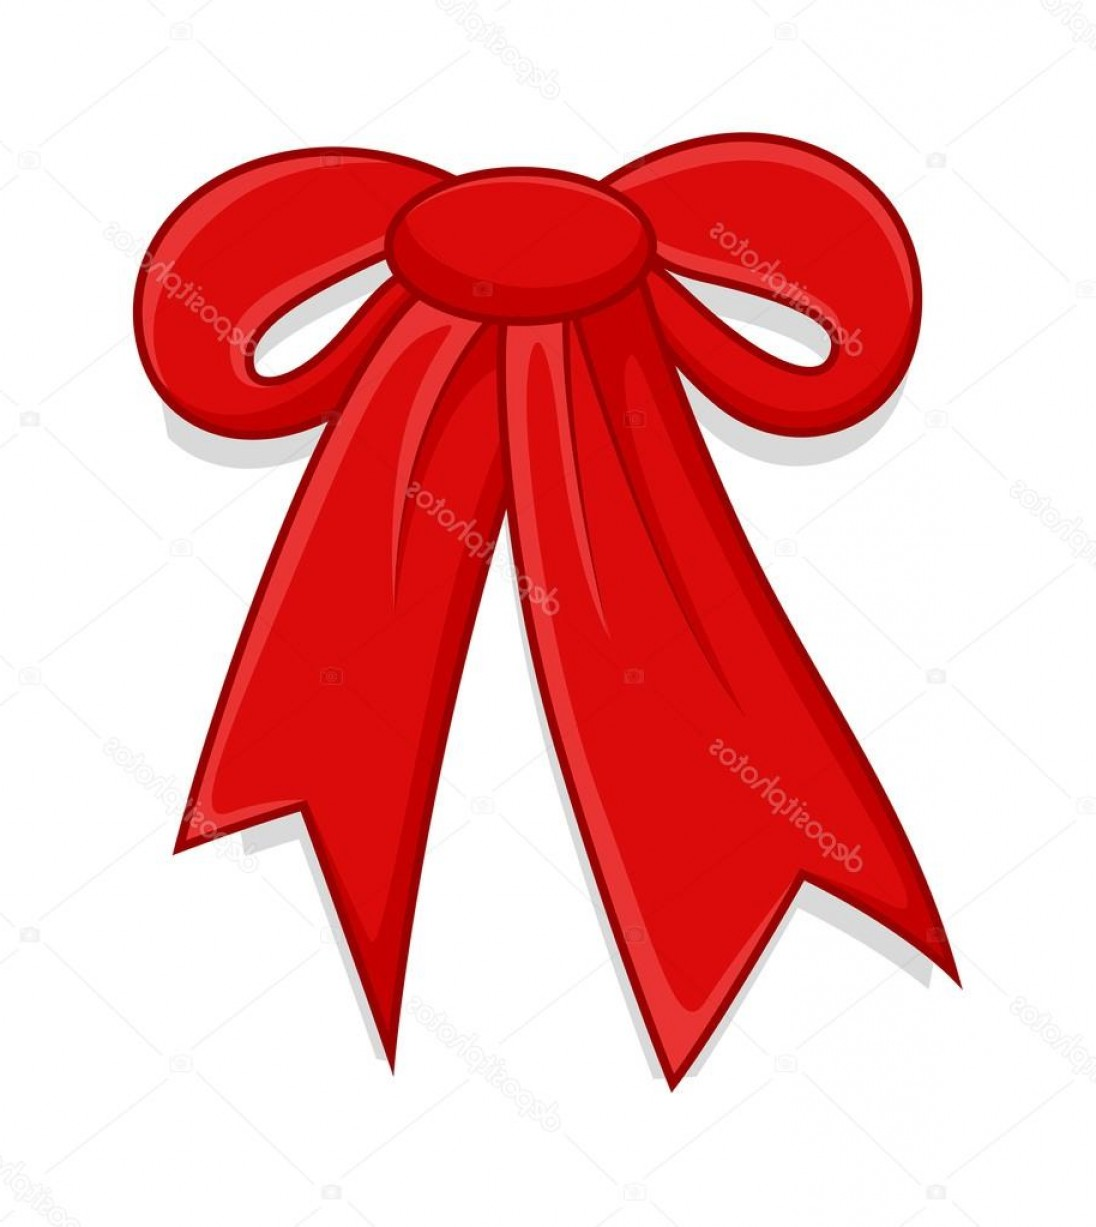 1096x1227 Stock Illustration Red Ribbon Bow Vector Shopatcloth